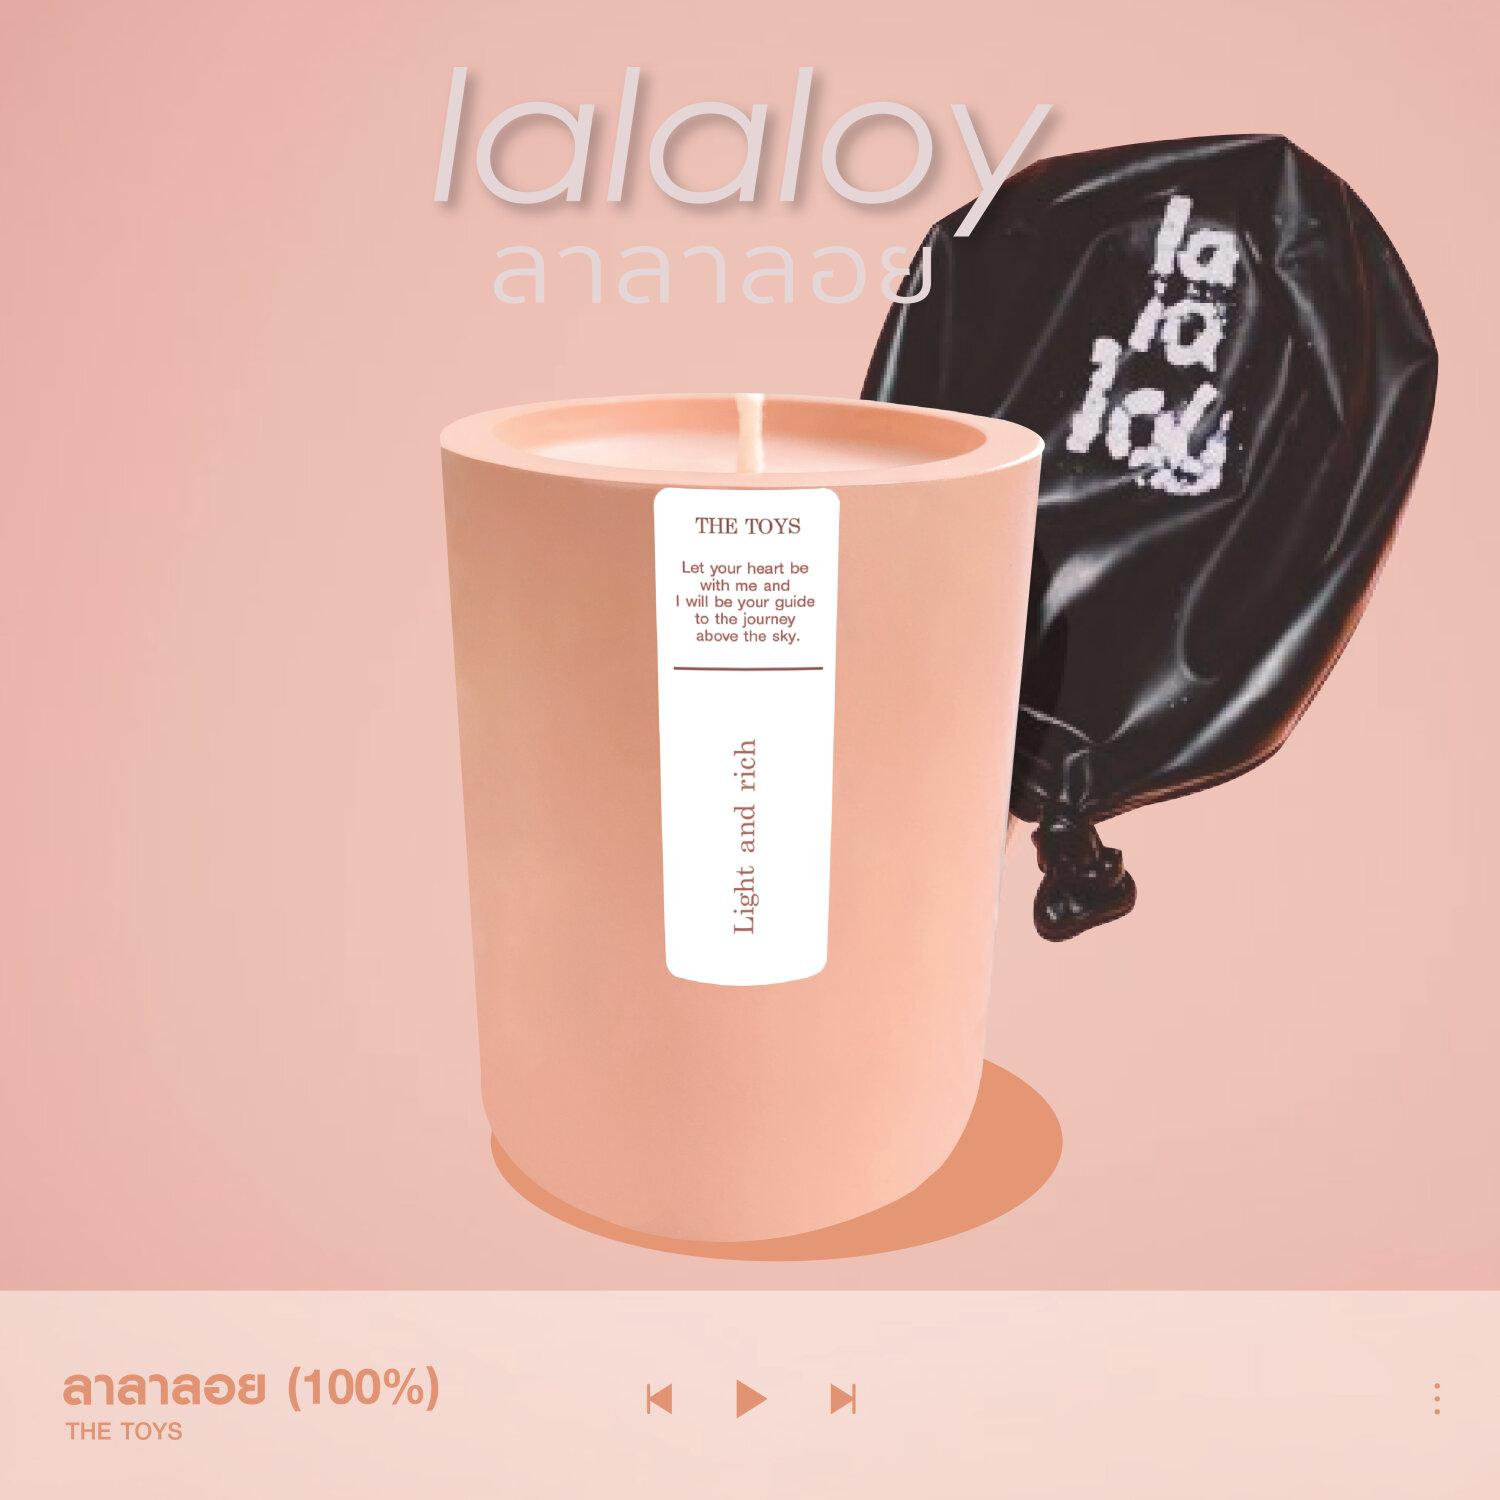 [Lot 1] The TOYS : Soy Wax Candle กลิ่น Light and rich inspired by เพลง ลาลาลอย (100%)